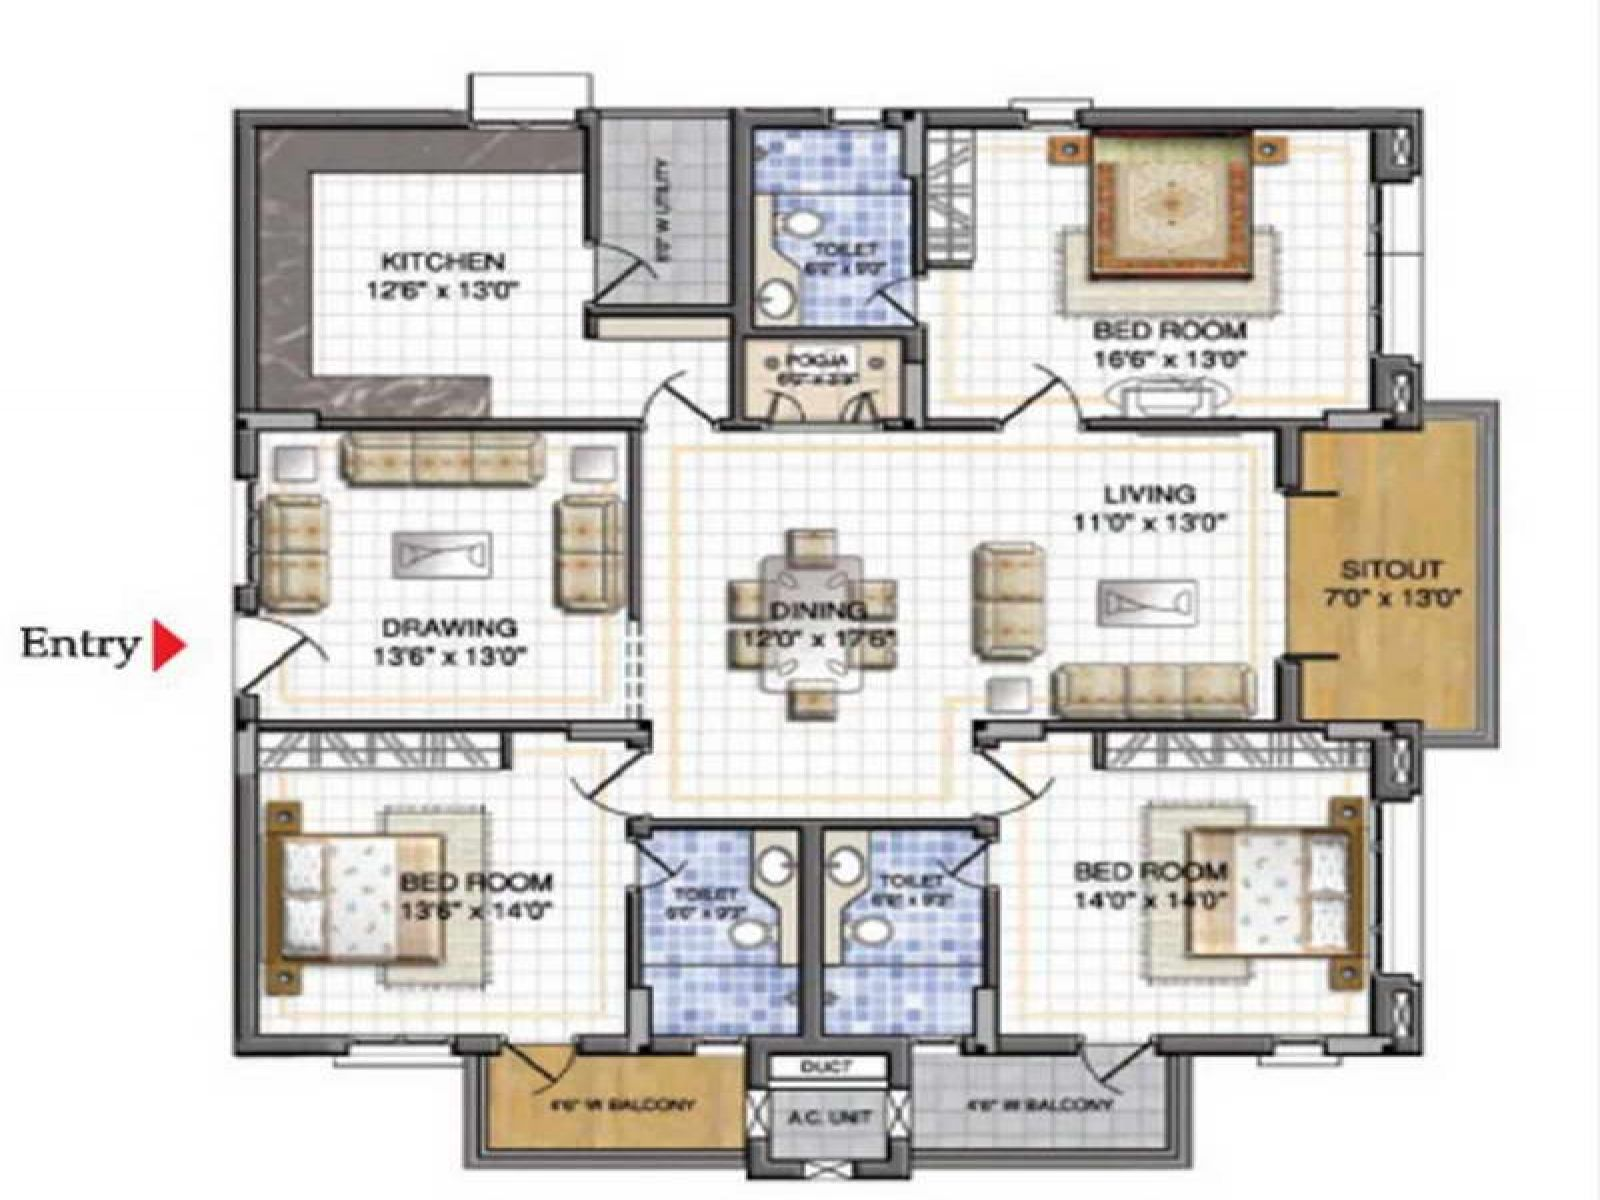 1bfcecd1e7236ae623c94b7341db508f house plans designs online free house design ideas pinterest,Online House Plan Design